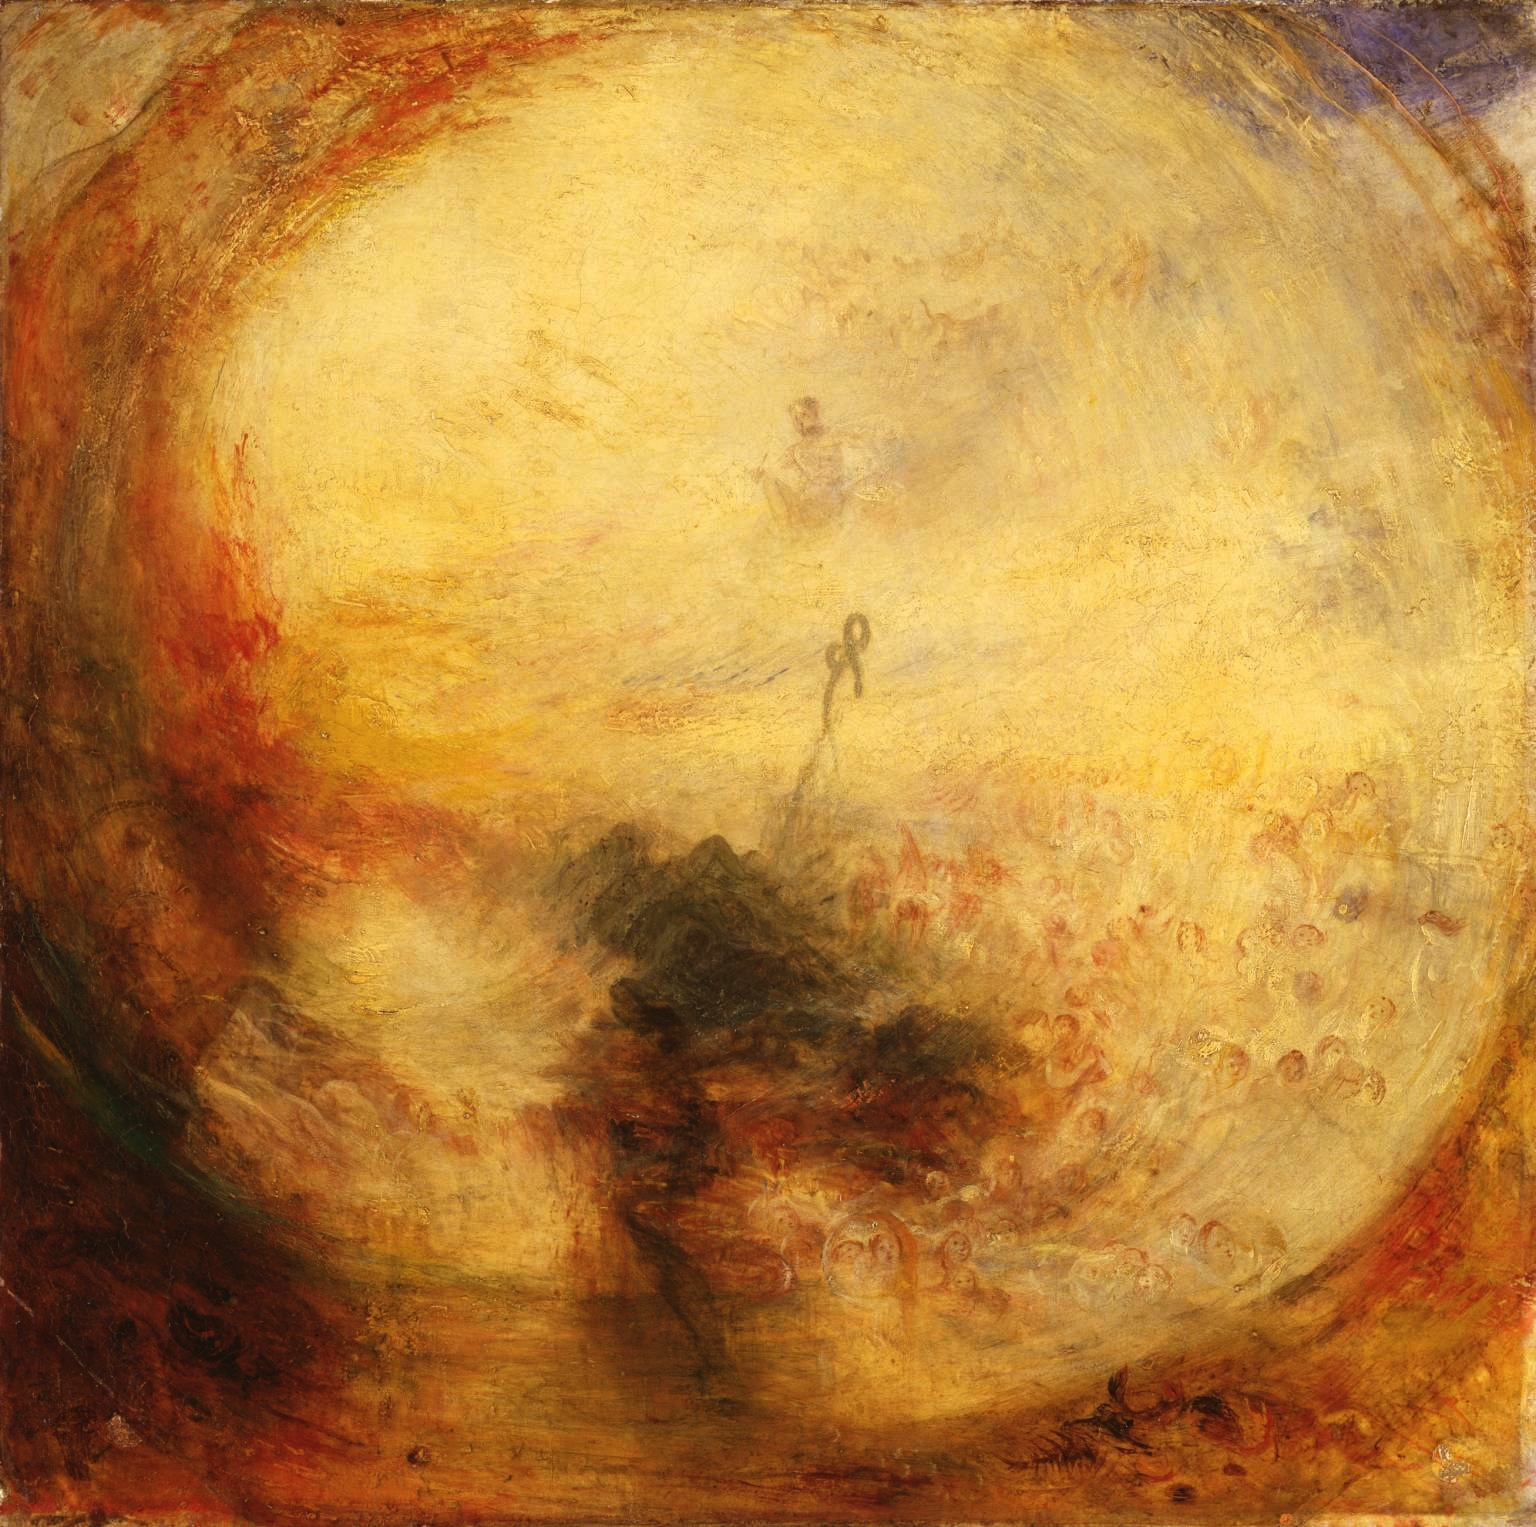 Light and Colour, Goethes-Theory, The Morning After The Deluge, 1843, J.M.W. Turner (Image courtesy of the Art Gallery of Ontario)